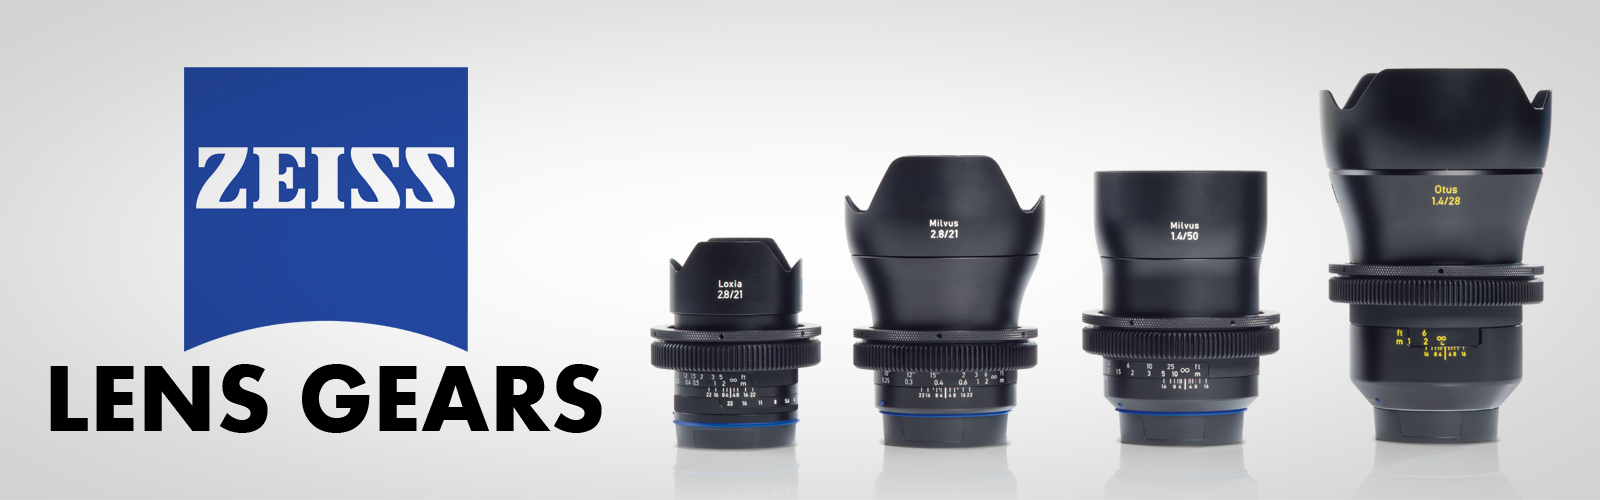 ZEISS Lens Gear Rings & Lens